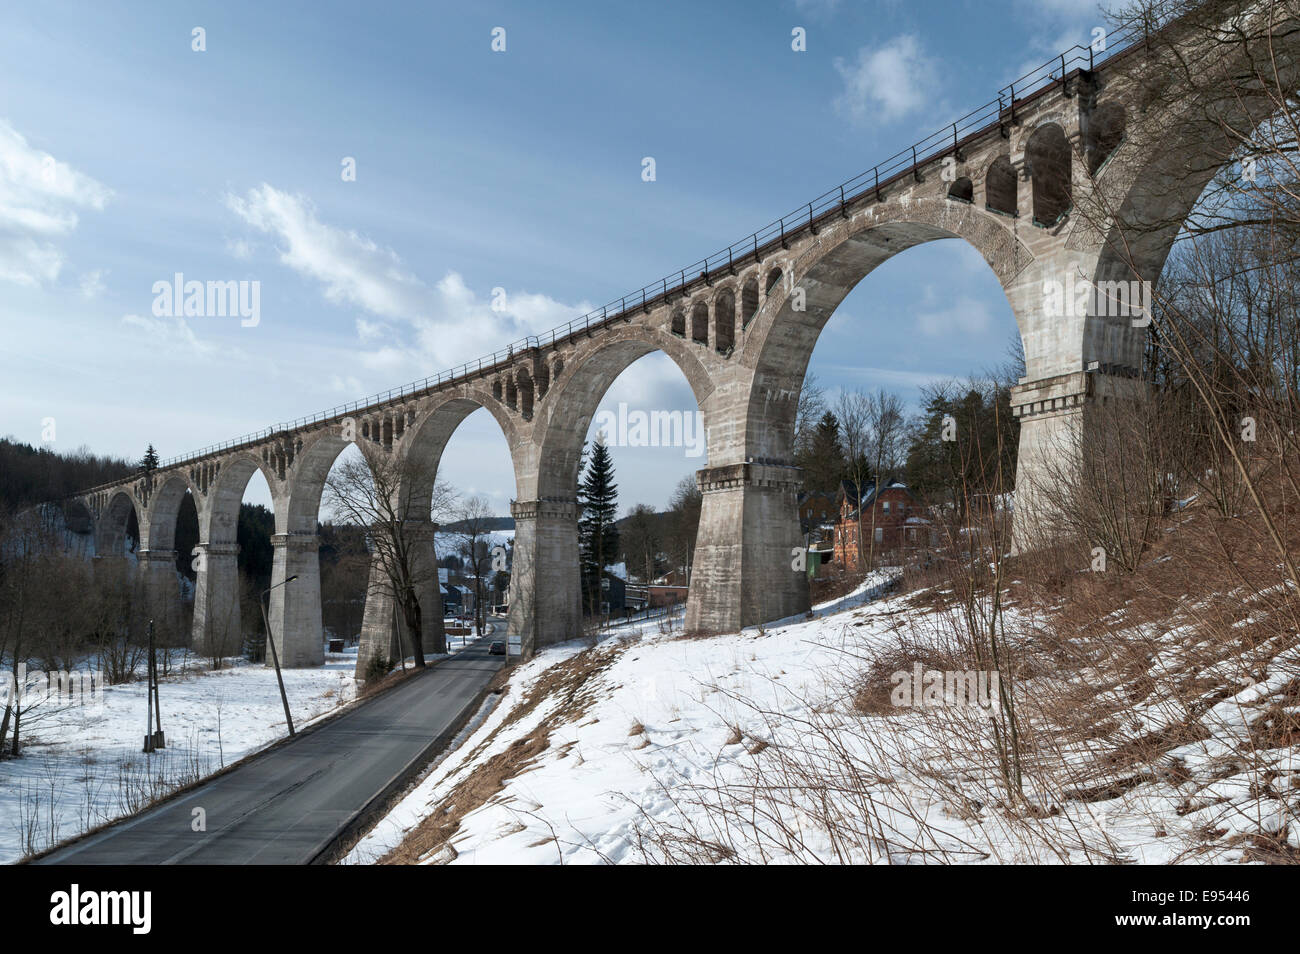 Railway viaduct, Hammerwiesen, Federal Road 281, Lichte, Thuringia, Germany - Stock Image